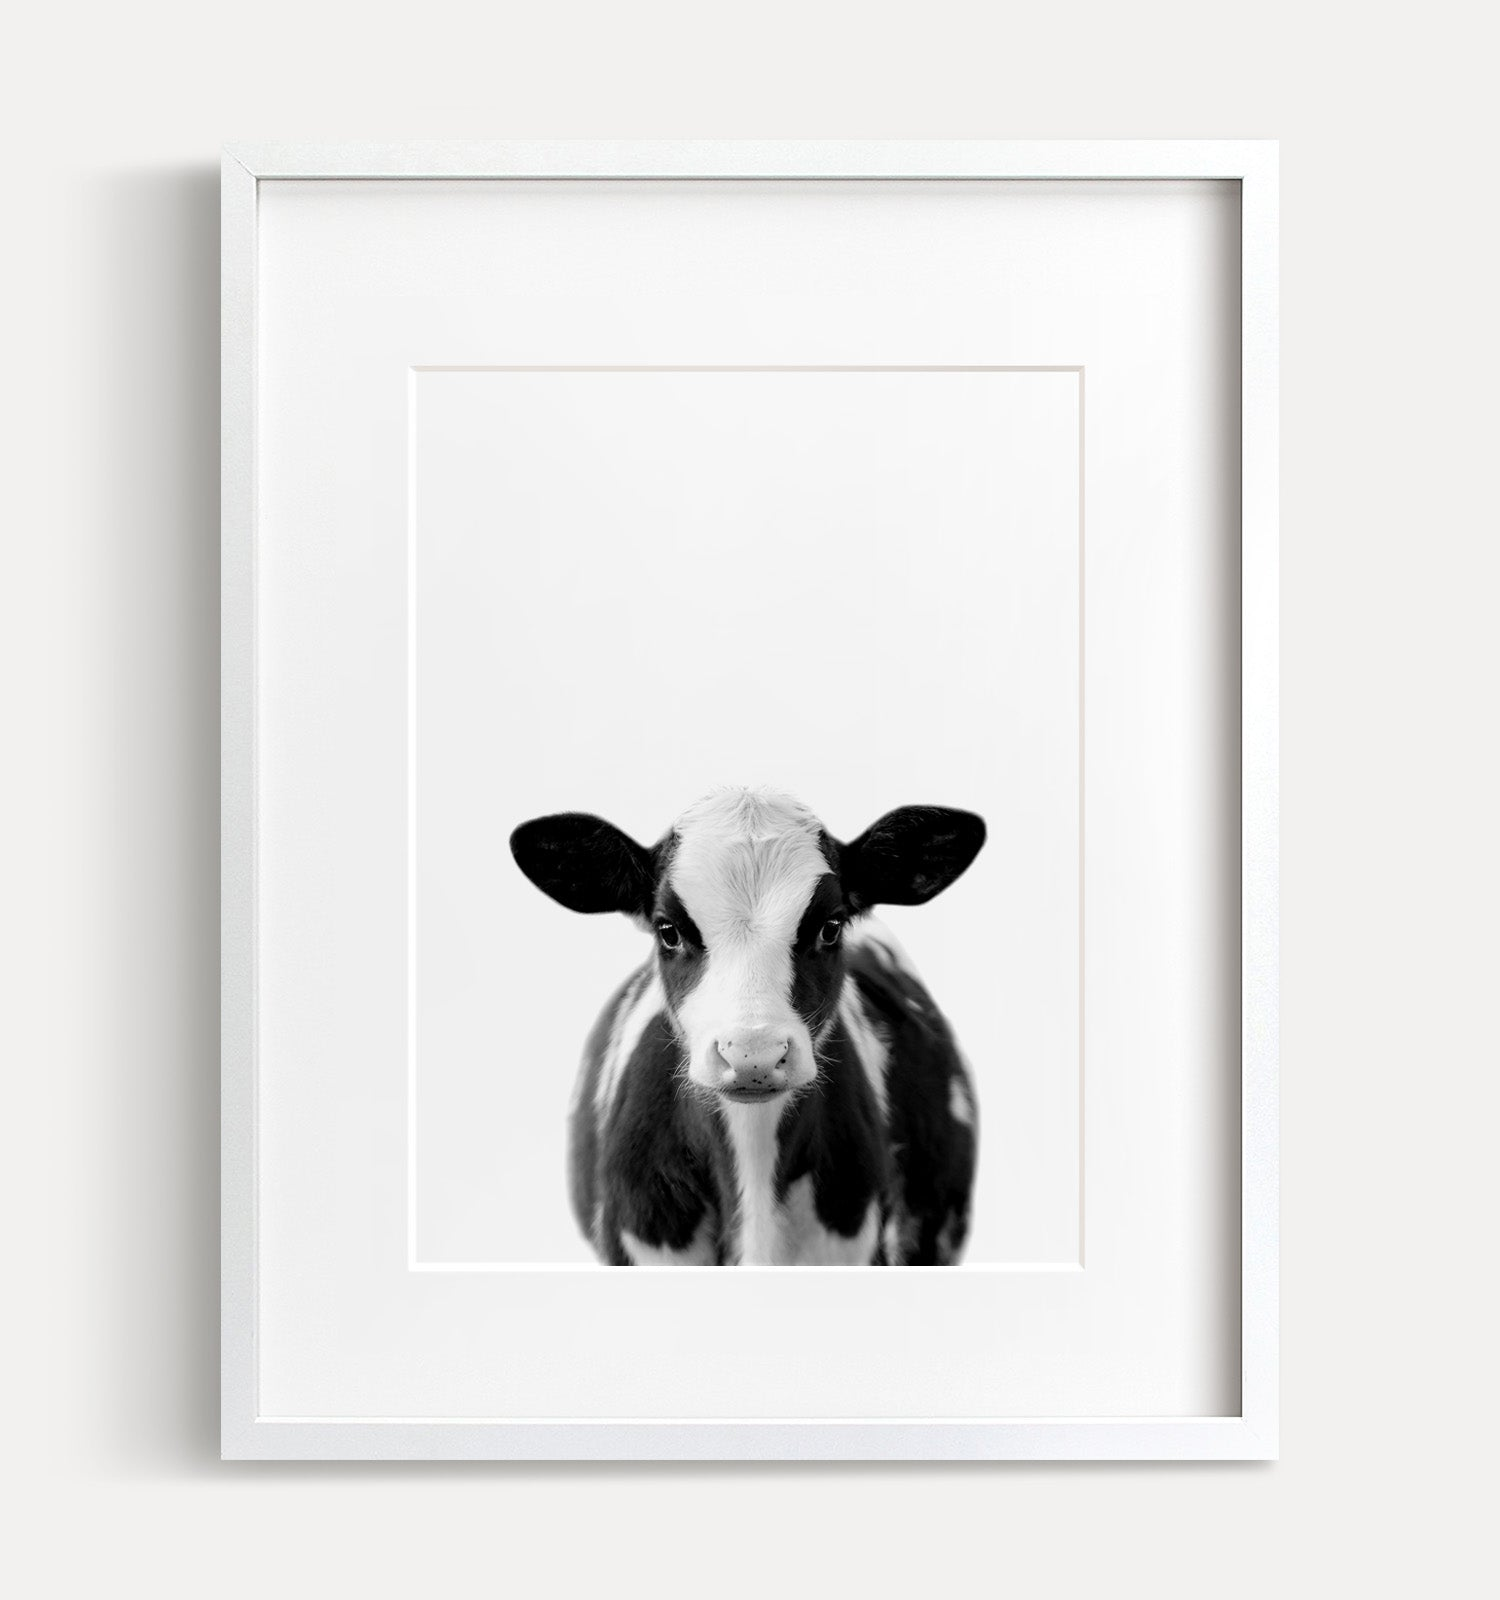 Baby Cow Print - Black and White - The Crown Prints